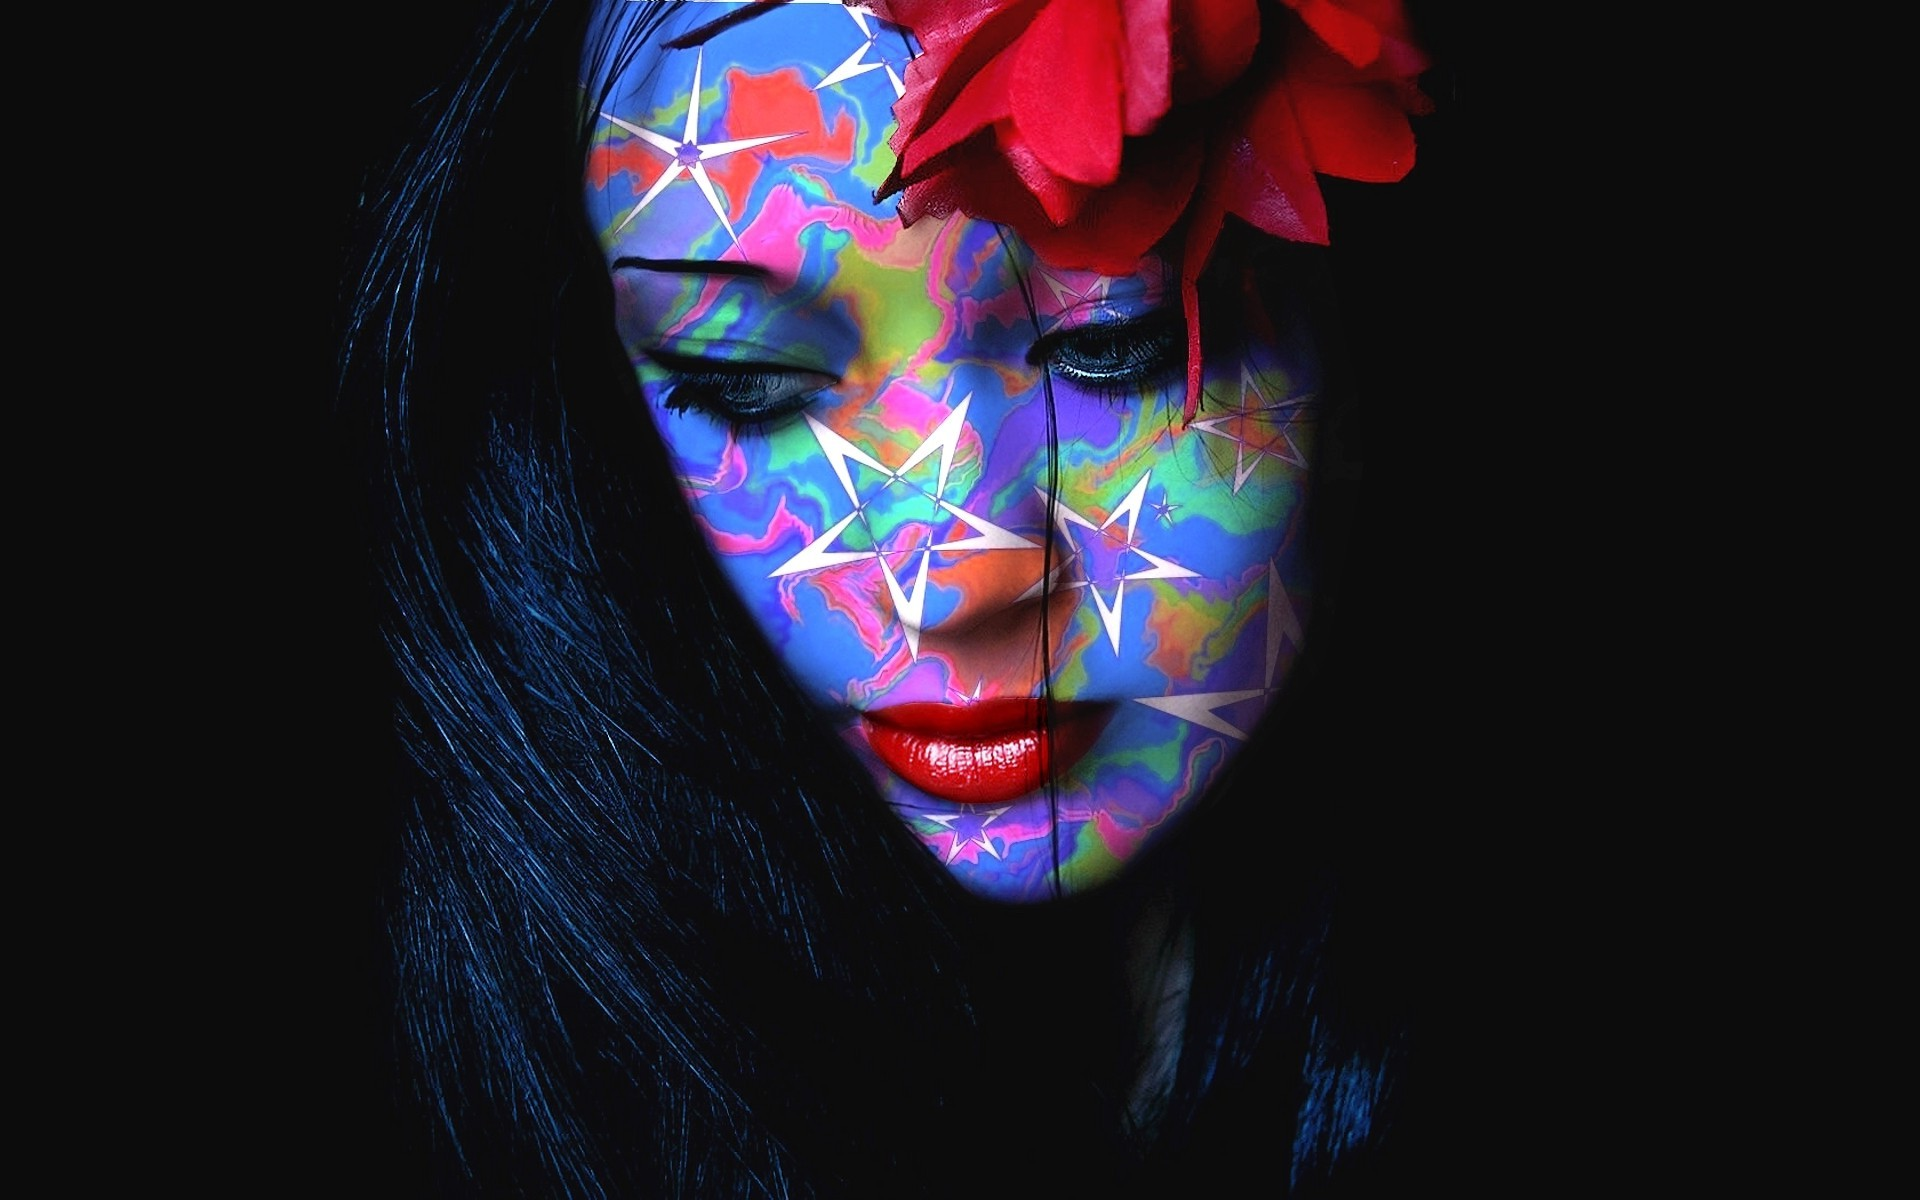 Holi Wallpaper 3d Women Face Looking Down Colorful Flower In Hair Red